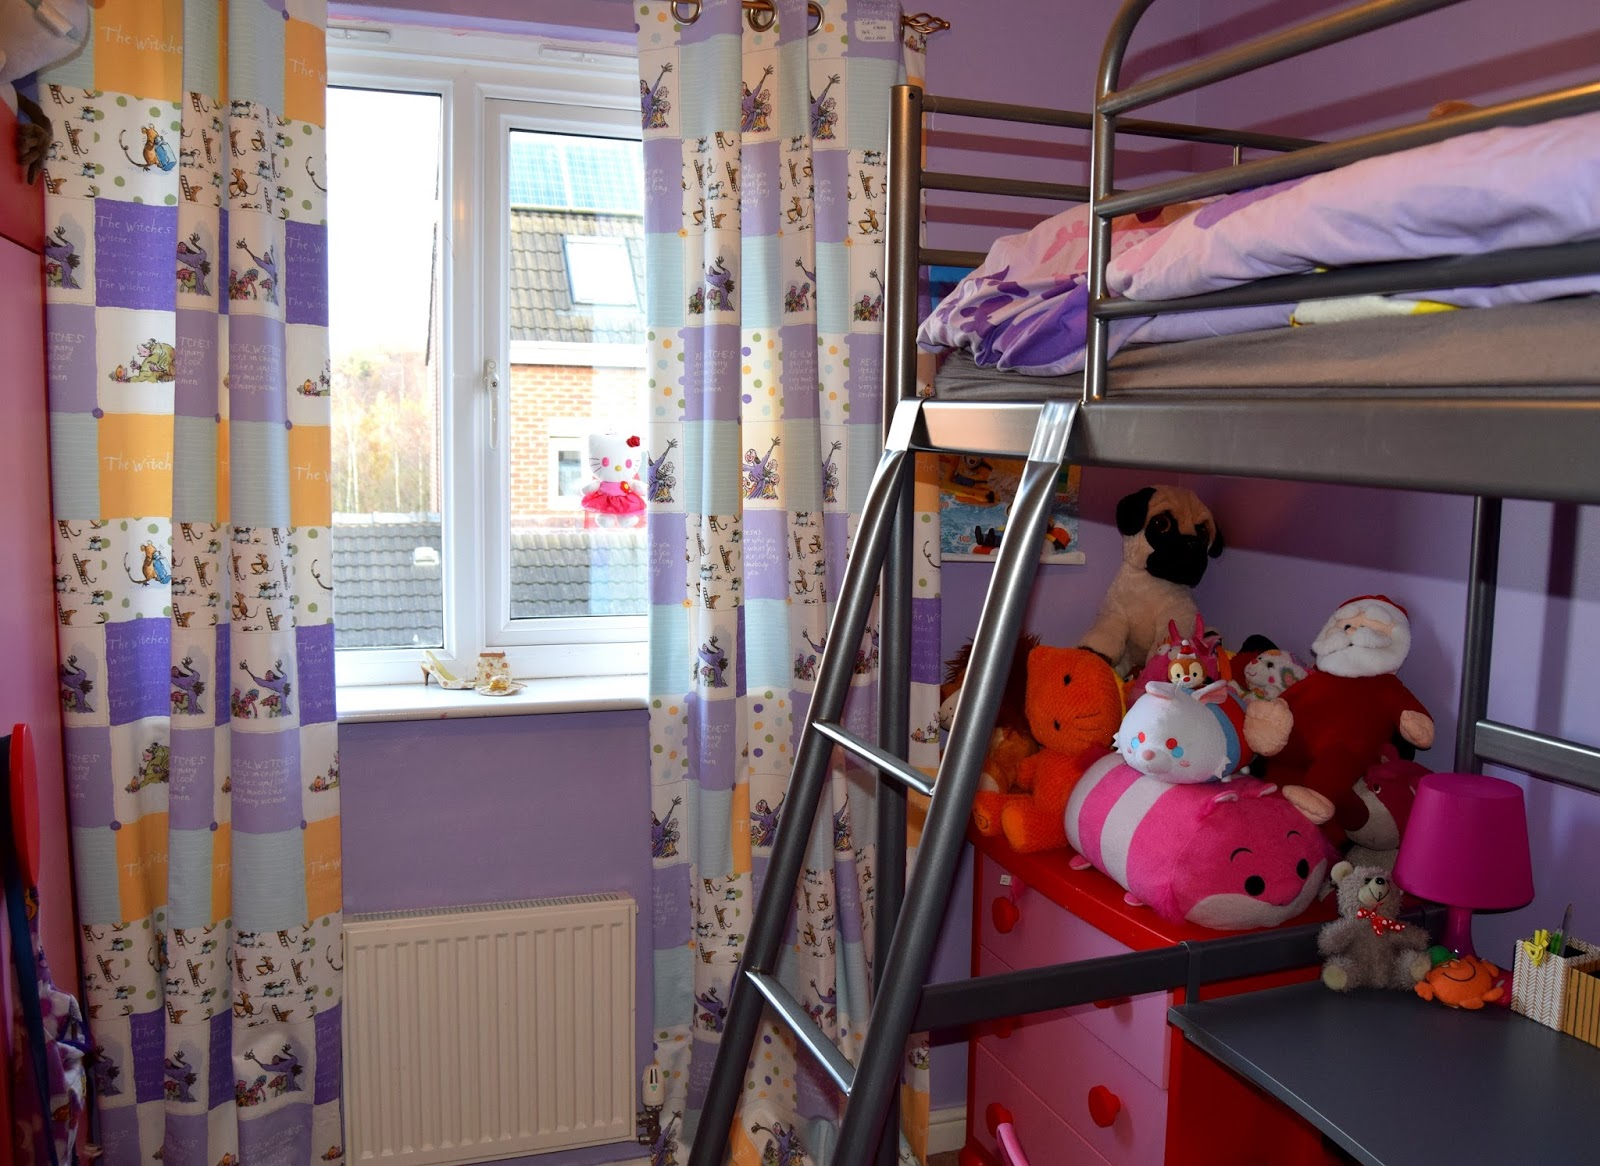 Roald Dahl Curtain Collection: Roald Dahl Witches Patchwork Curtains Review.